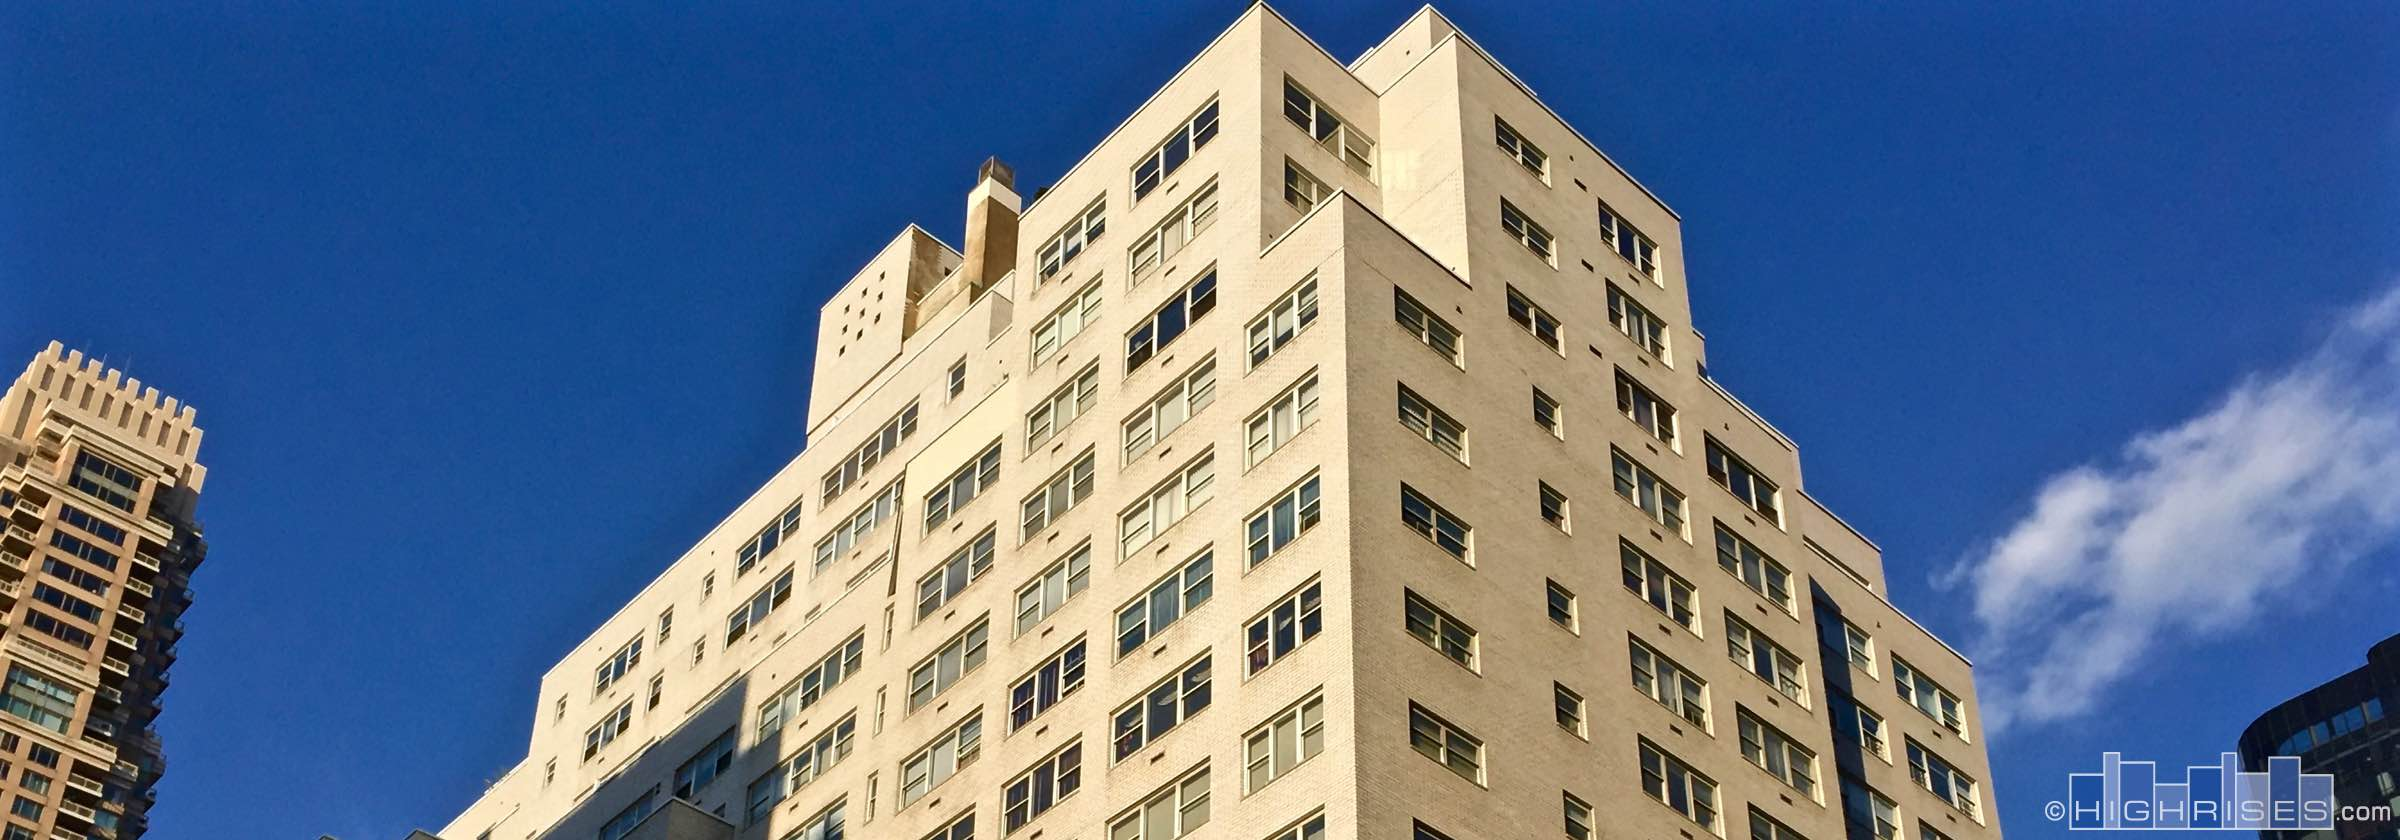 201 East 66th Street Condos For Sale New York